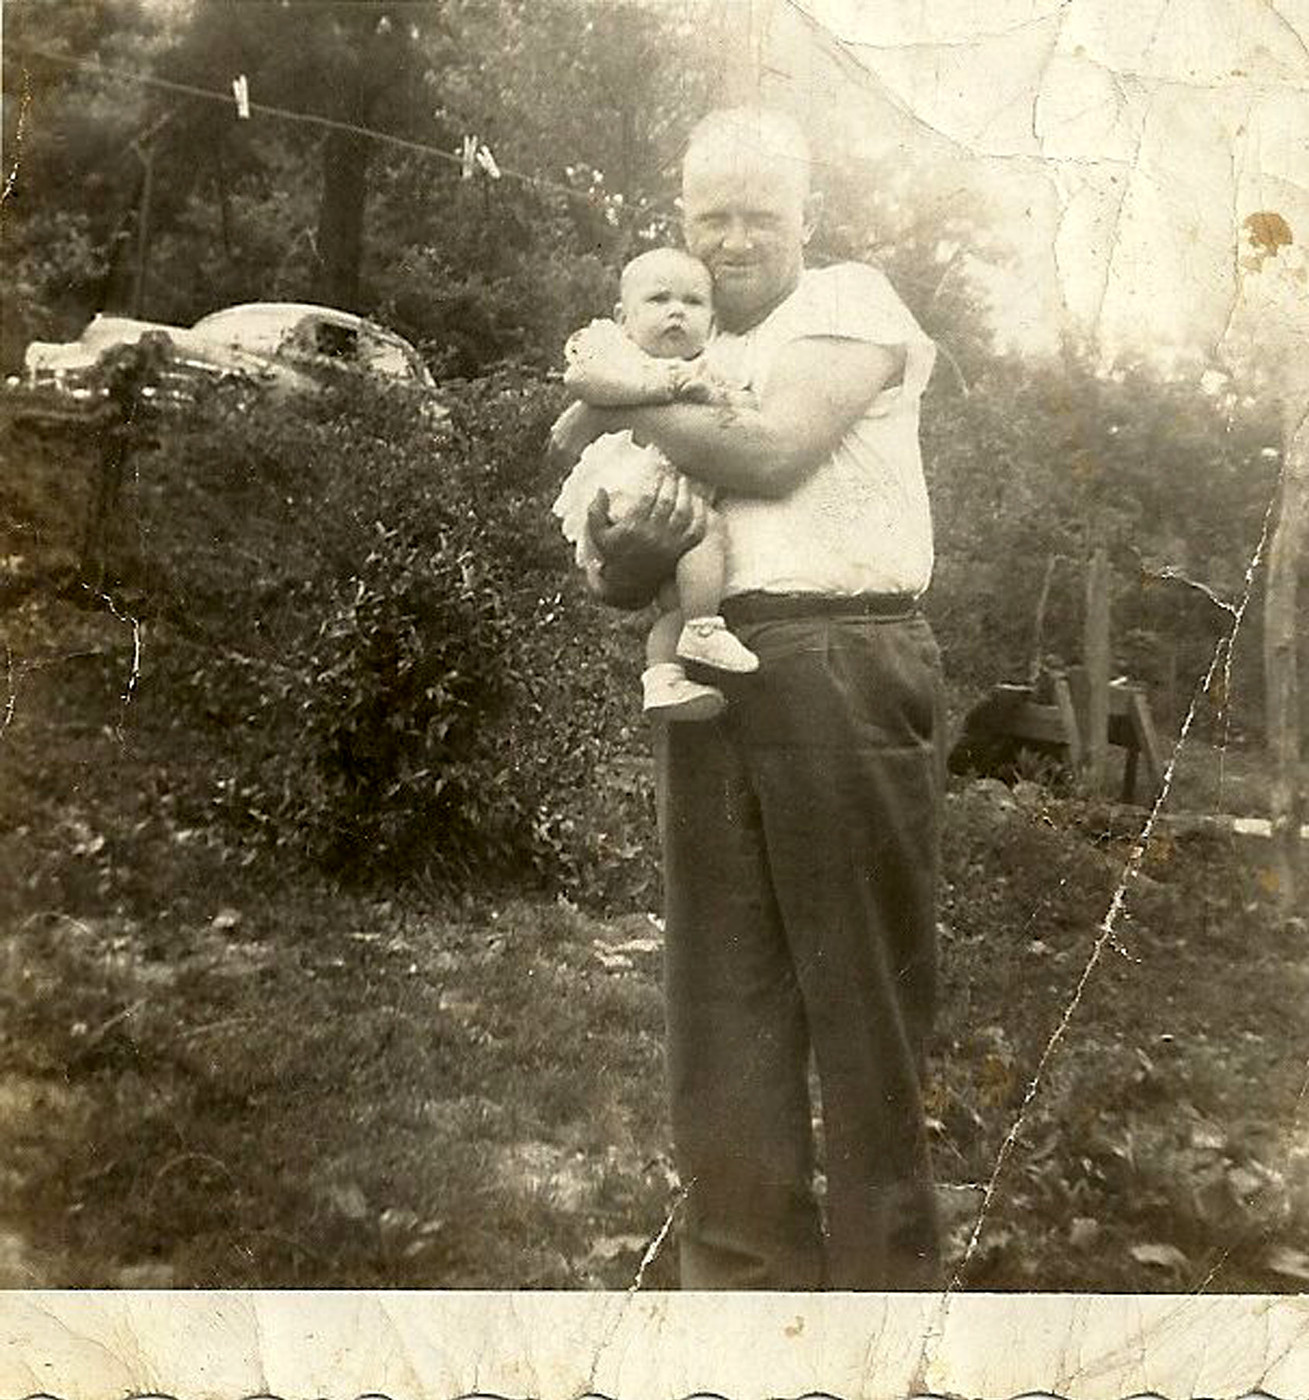 2 - Wiley Gibson (1914-1999), and the baby may be a son or daughter.